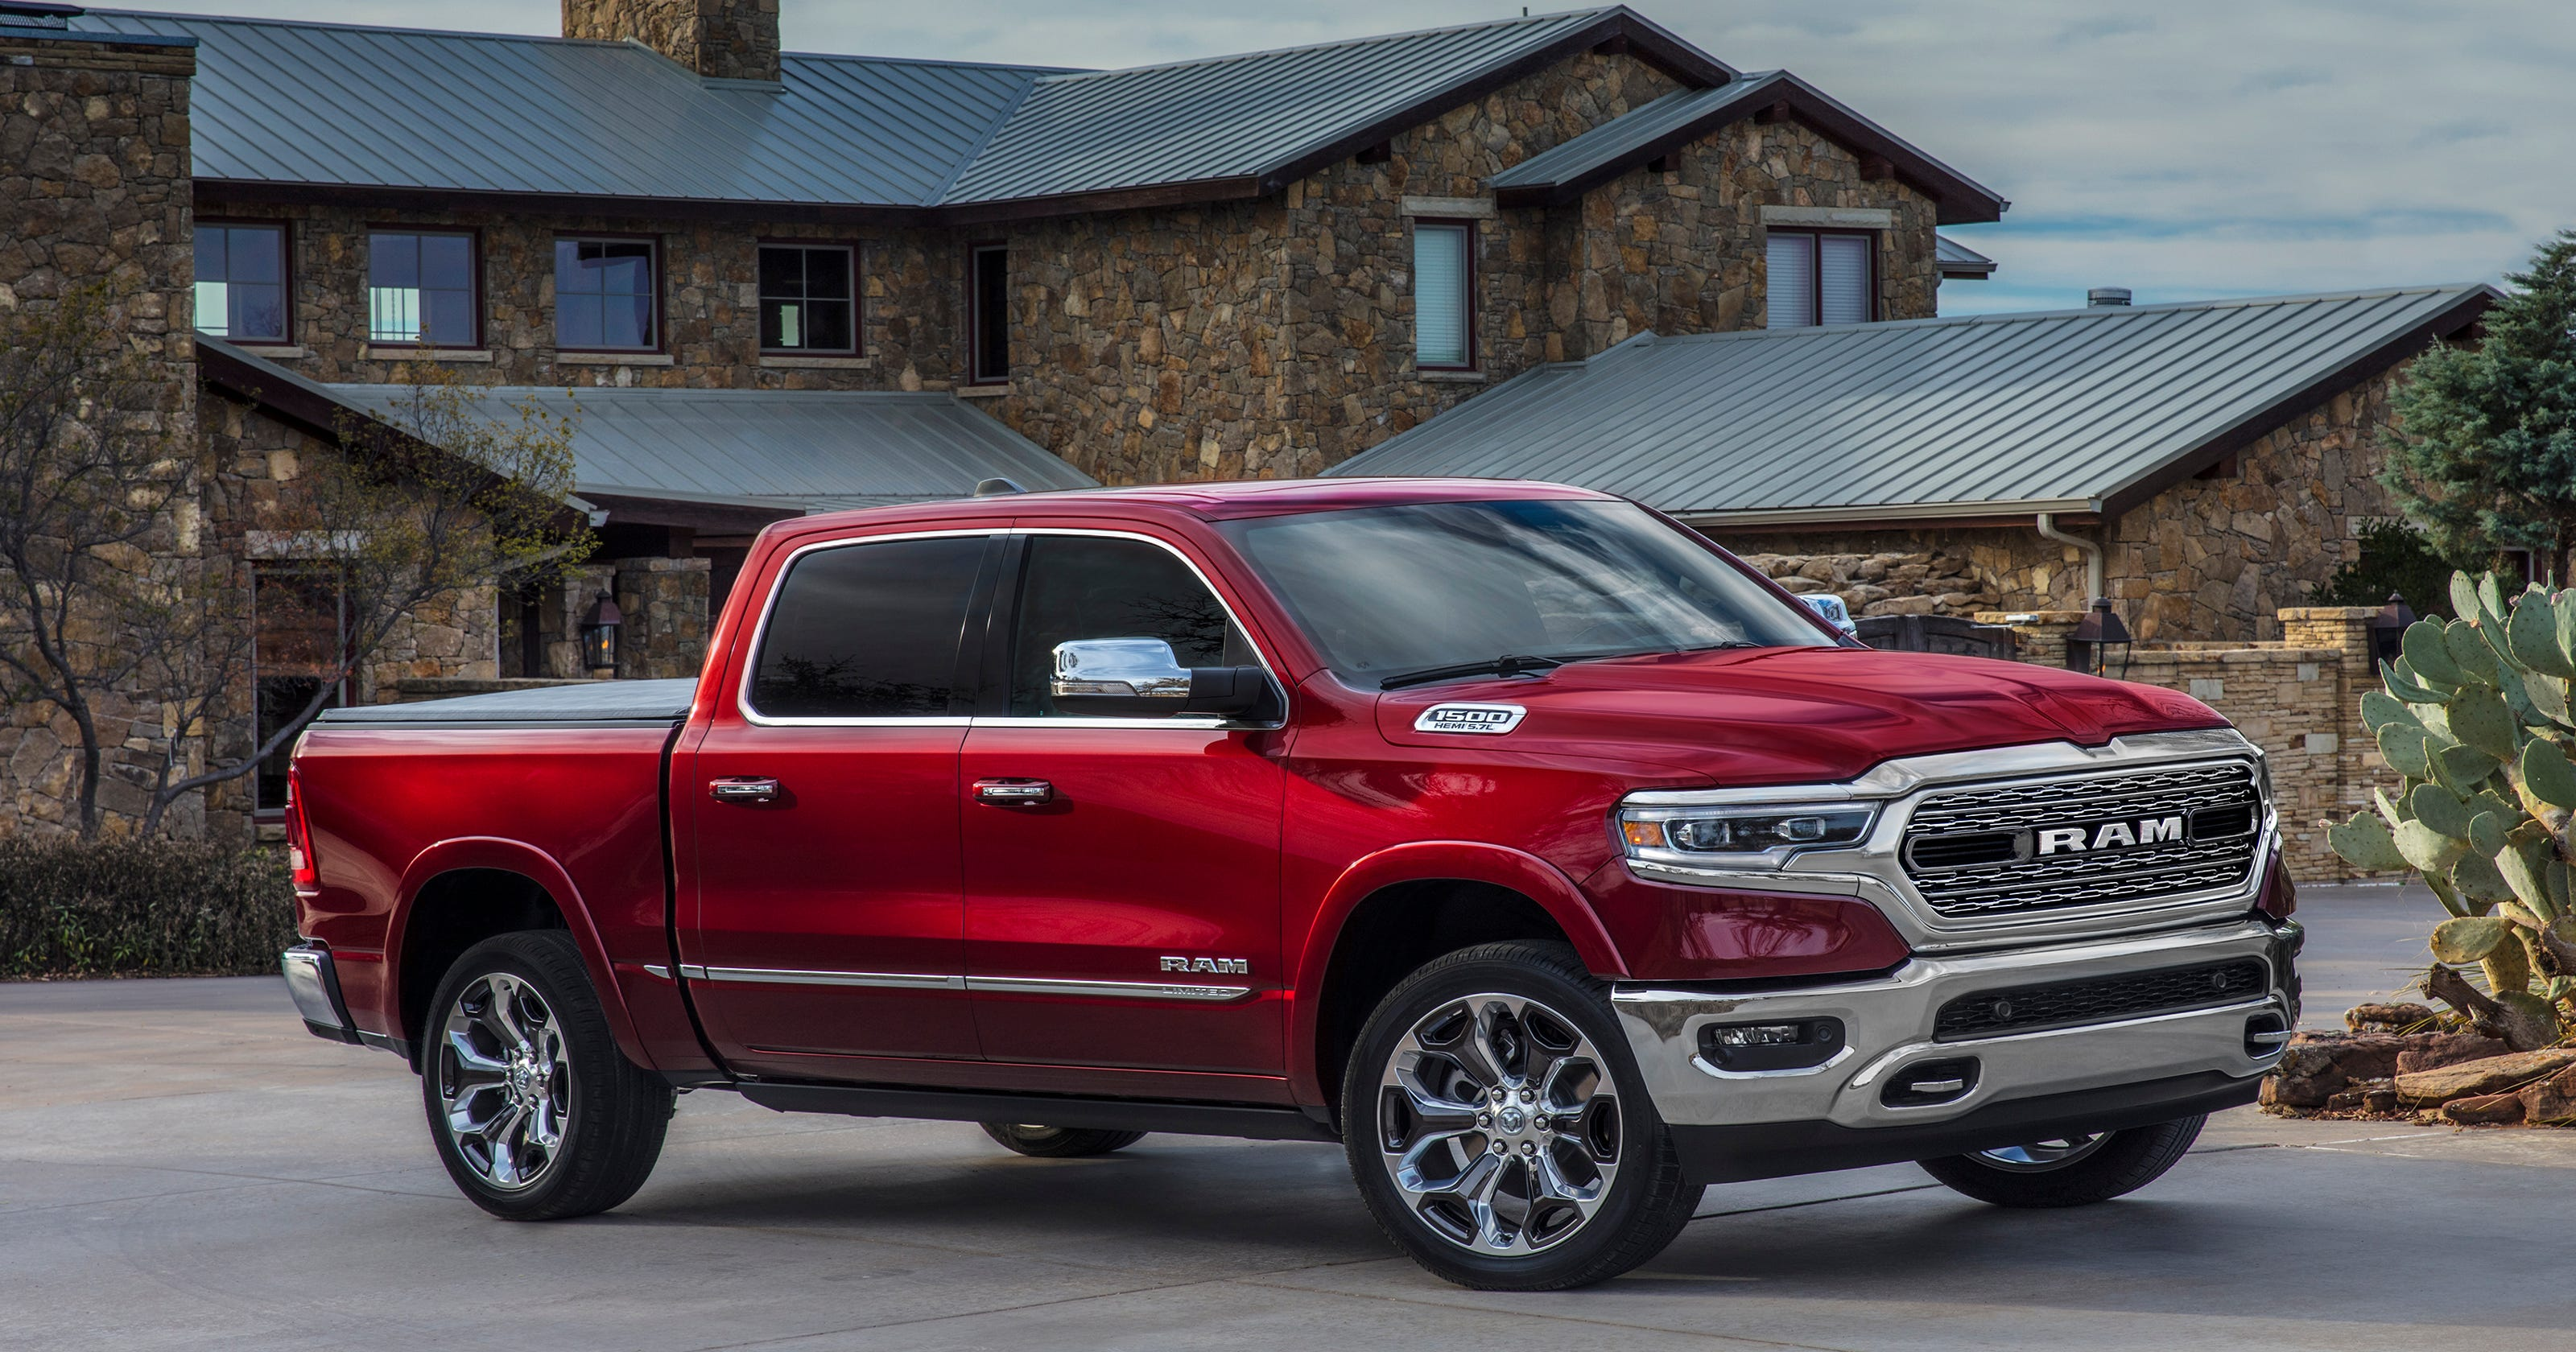 Image result for 2019 ram 1500